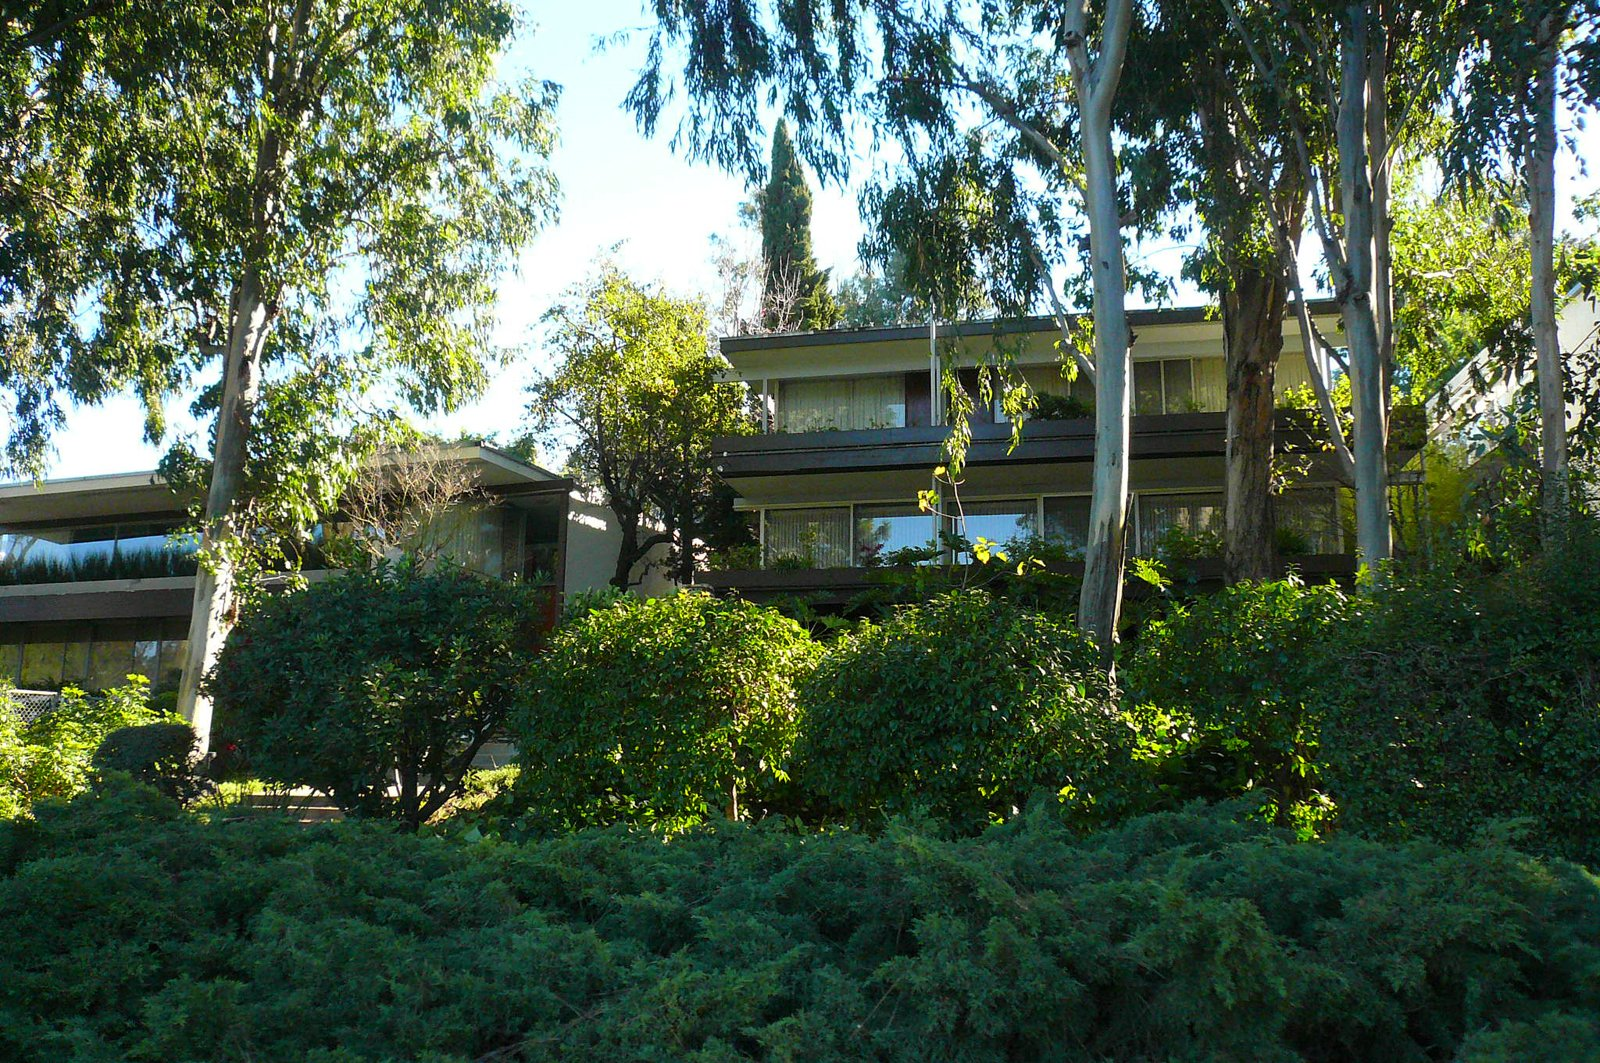 Next up: a cruise down Silverlake Boulevard, where Bestor pointed out, behind a screen of trees, a pair of houses Richard Neutra developed speculatively in the early 1960s.  An Architect's Guide to Silver Lake by Jaime Gillin